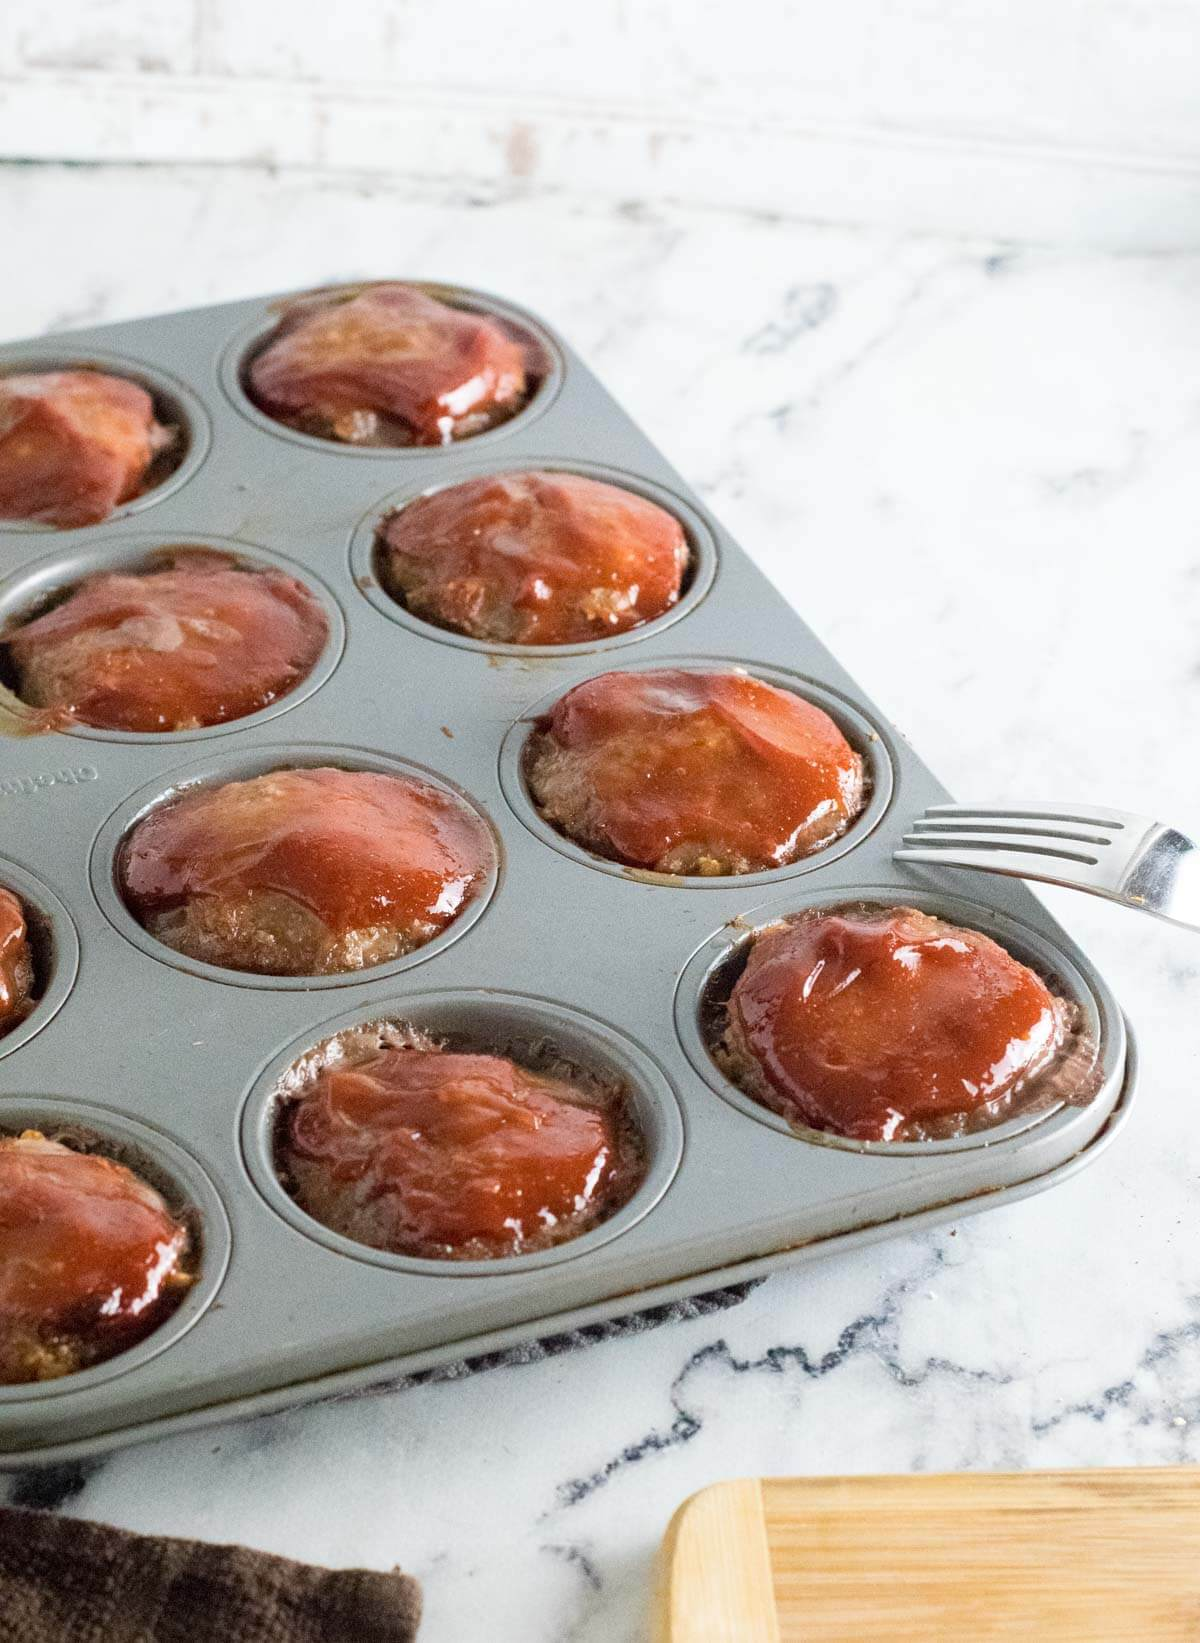 Meatloaf in muffin tin.